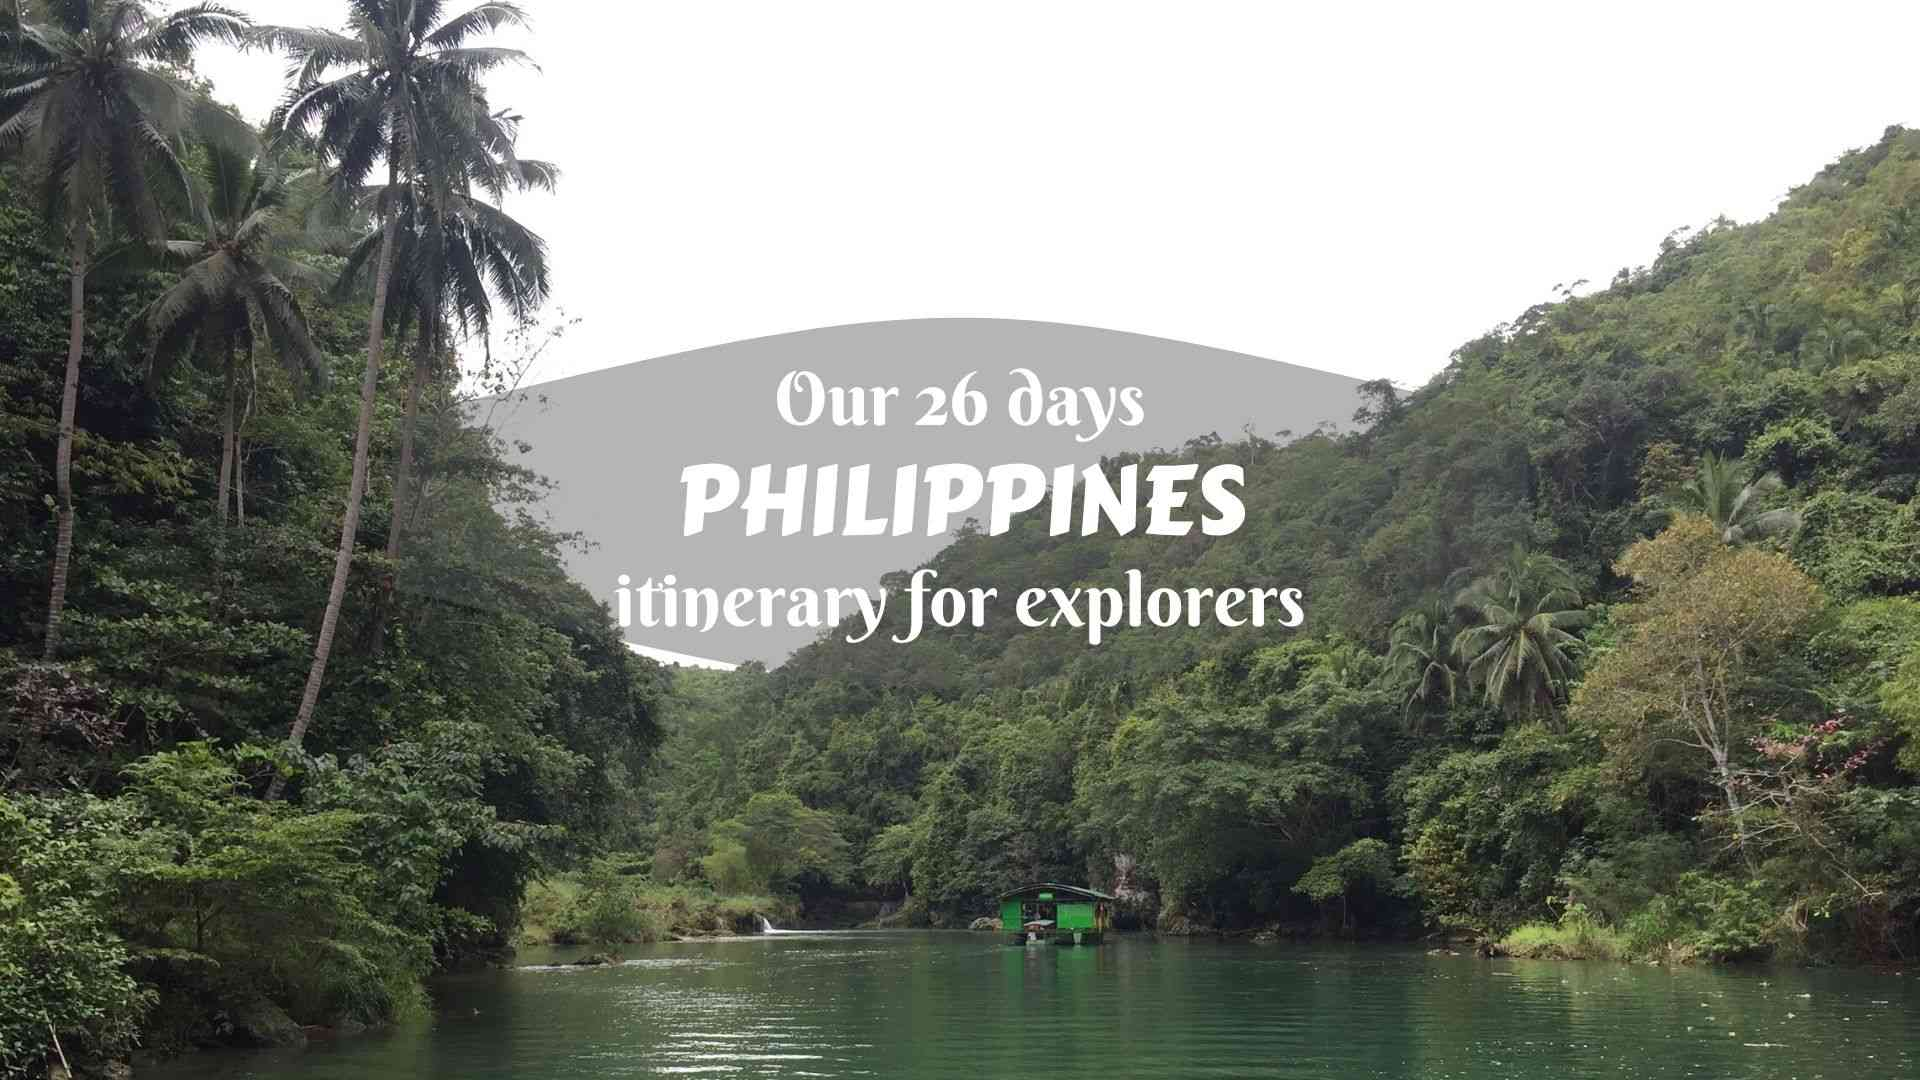 Our 26 days Philippines itinerary for explorers